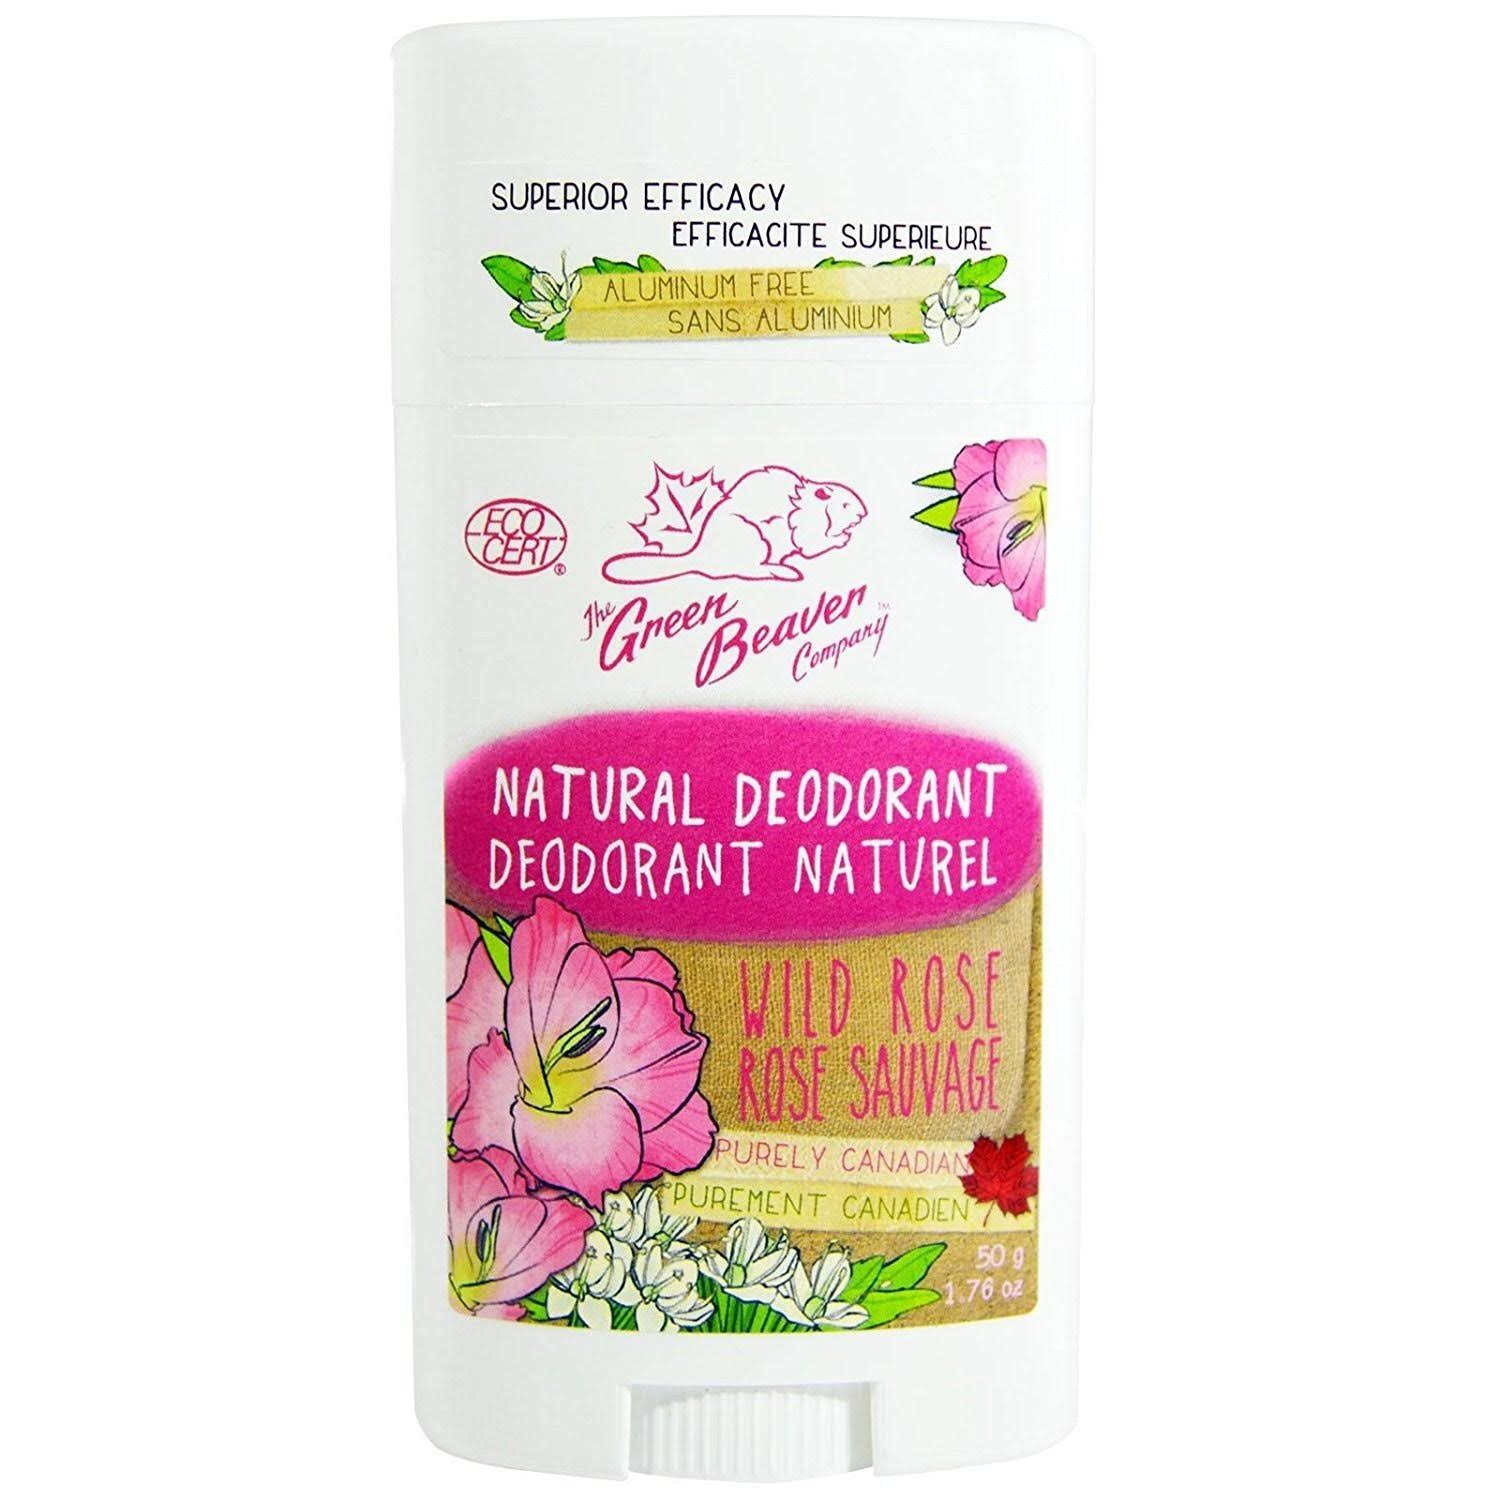 Green Beaver Natural Deodorant - Wild Rose, 50g